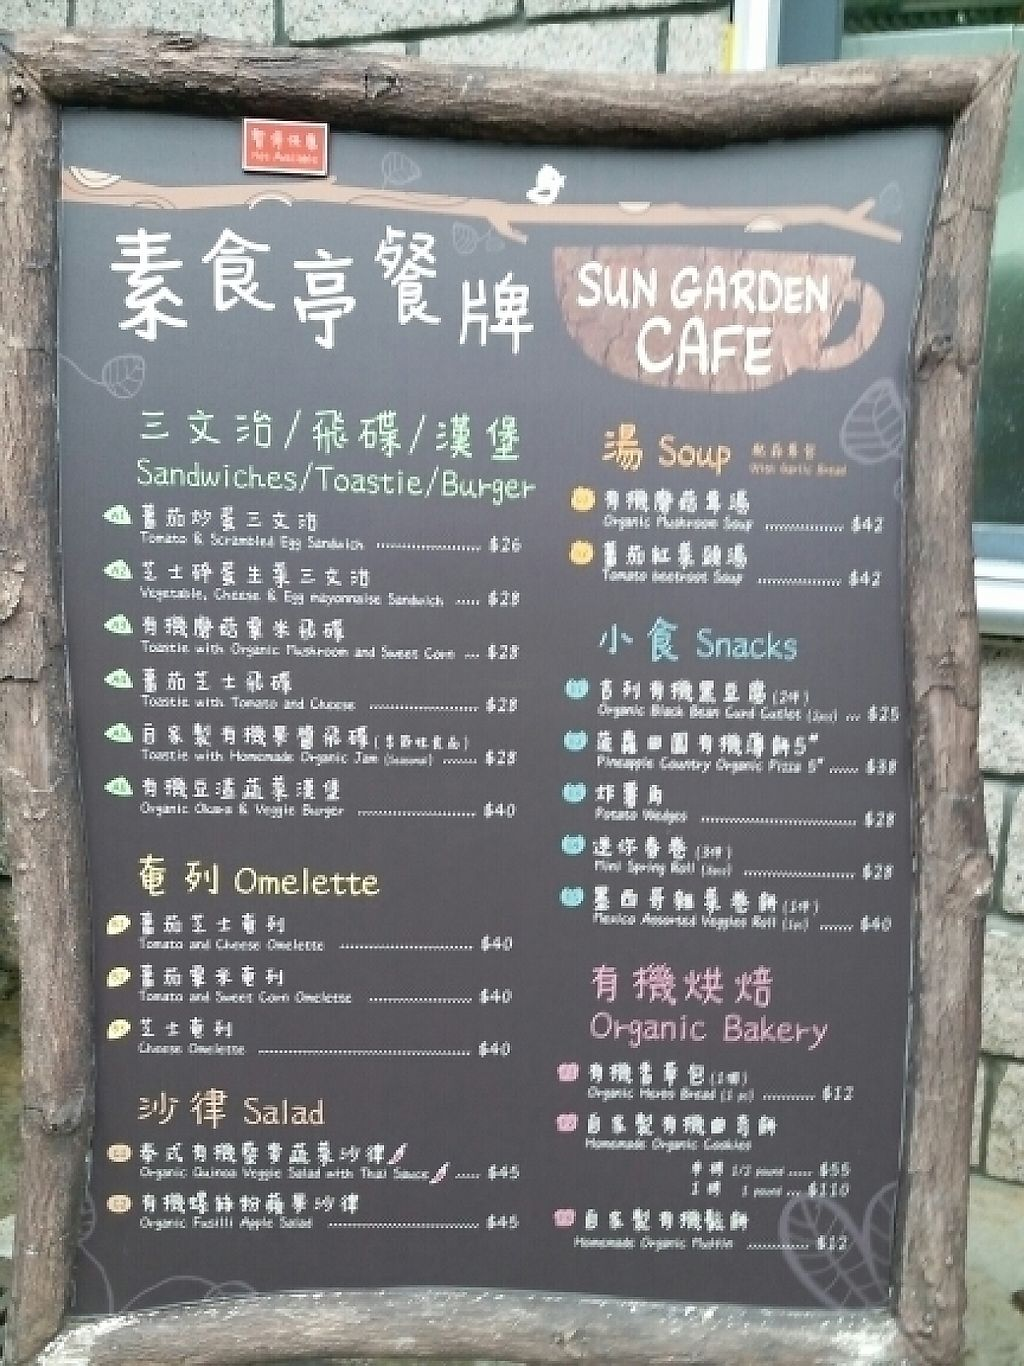 """Photo of Sun Garden Cafe  by <a href=""""/members/profile/ouikouik"""">ouikouik</a> <br/>sun garden cafe <br/> March 26, 2017  - <a href='/contact/abuse/image/51562/241067'>Report</a>"""